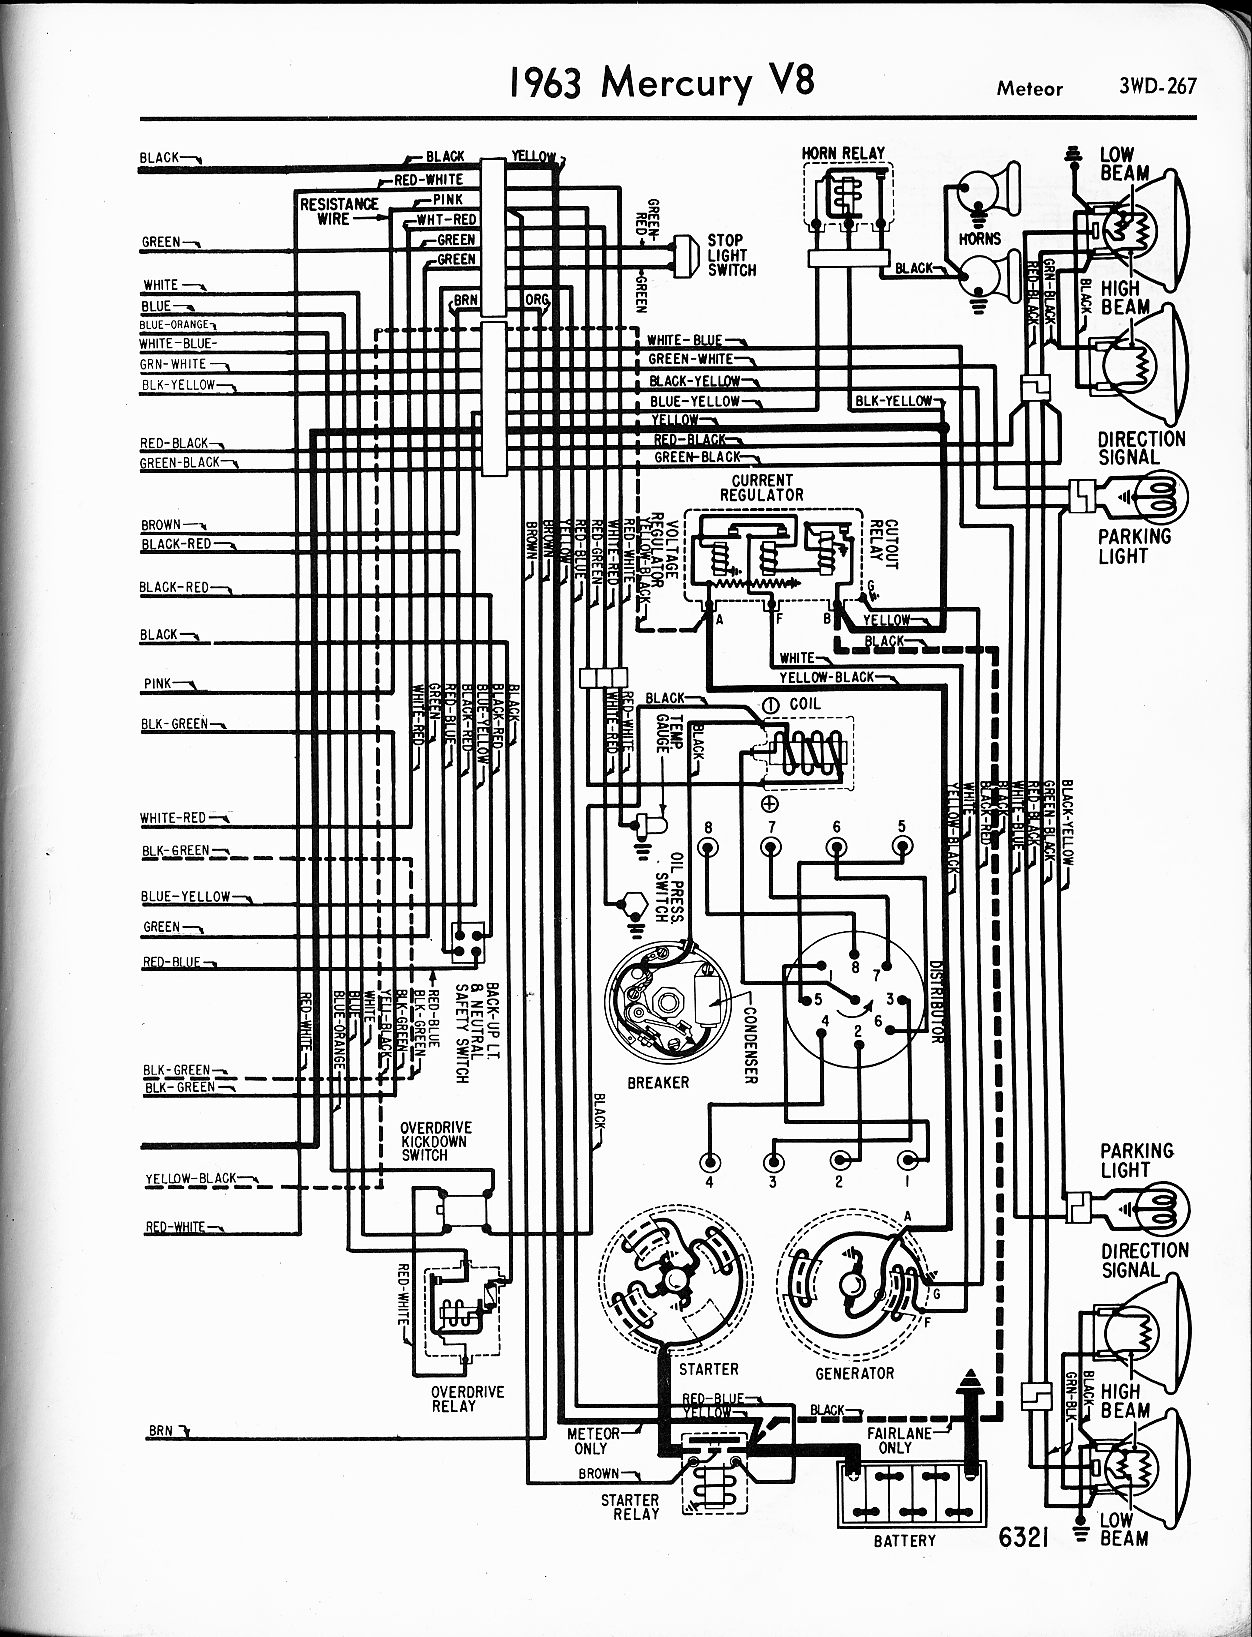 hight resolution of rv starter wiring diagram 10 ulrich temme de u2022atwood 8535 furnace wiring diagram for rv